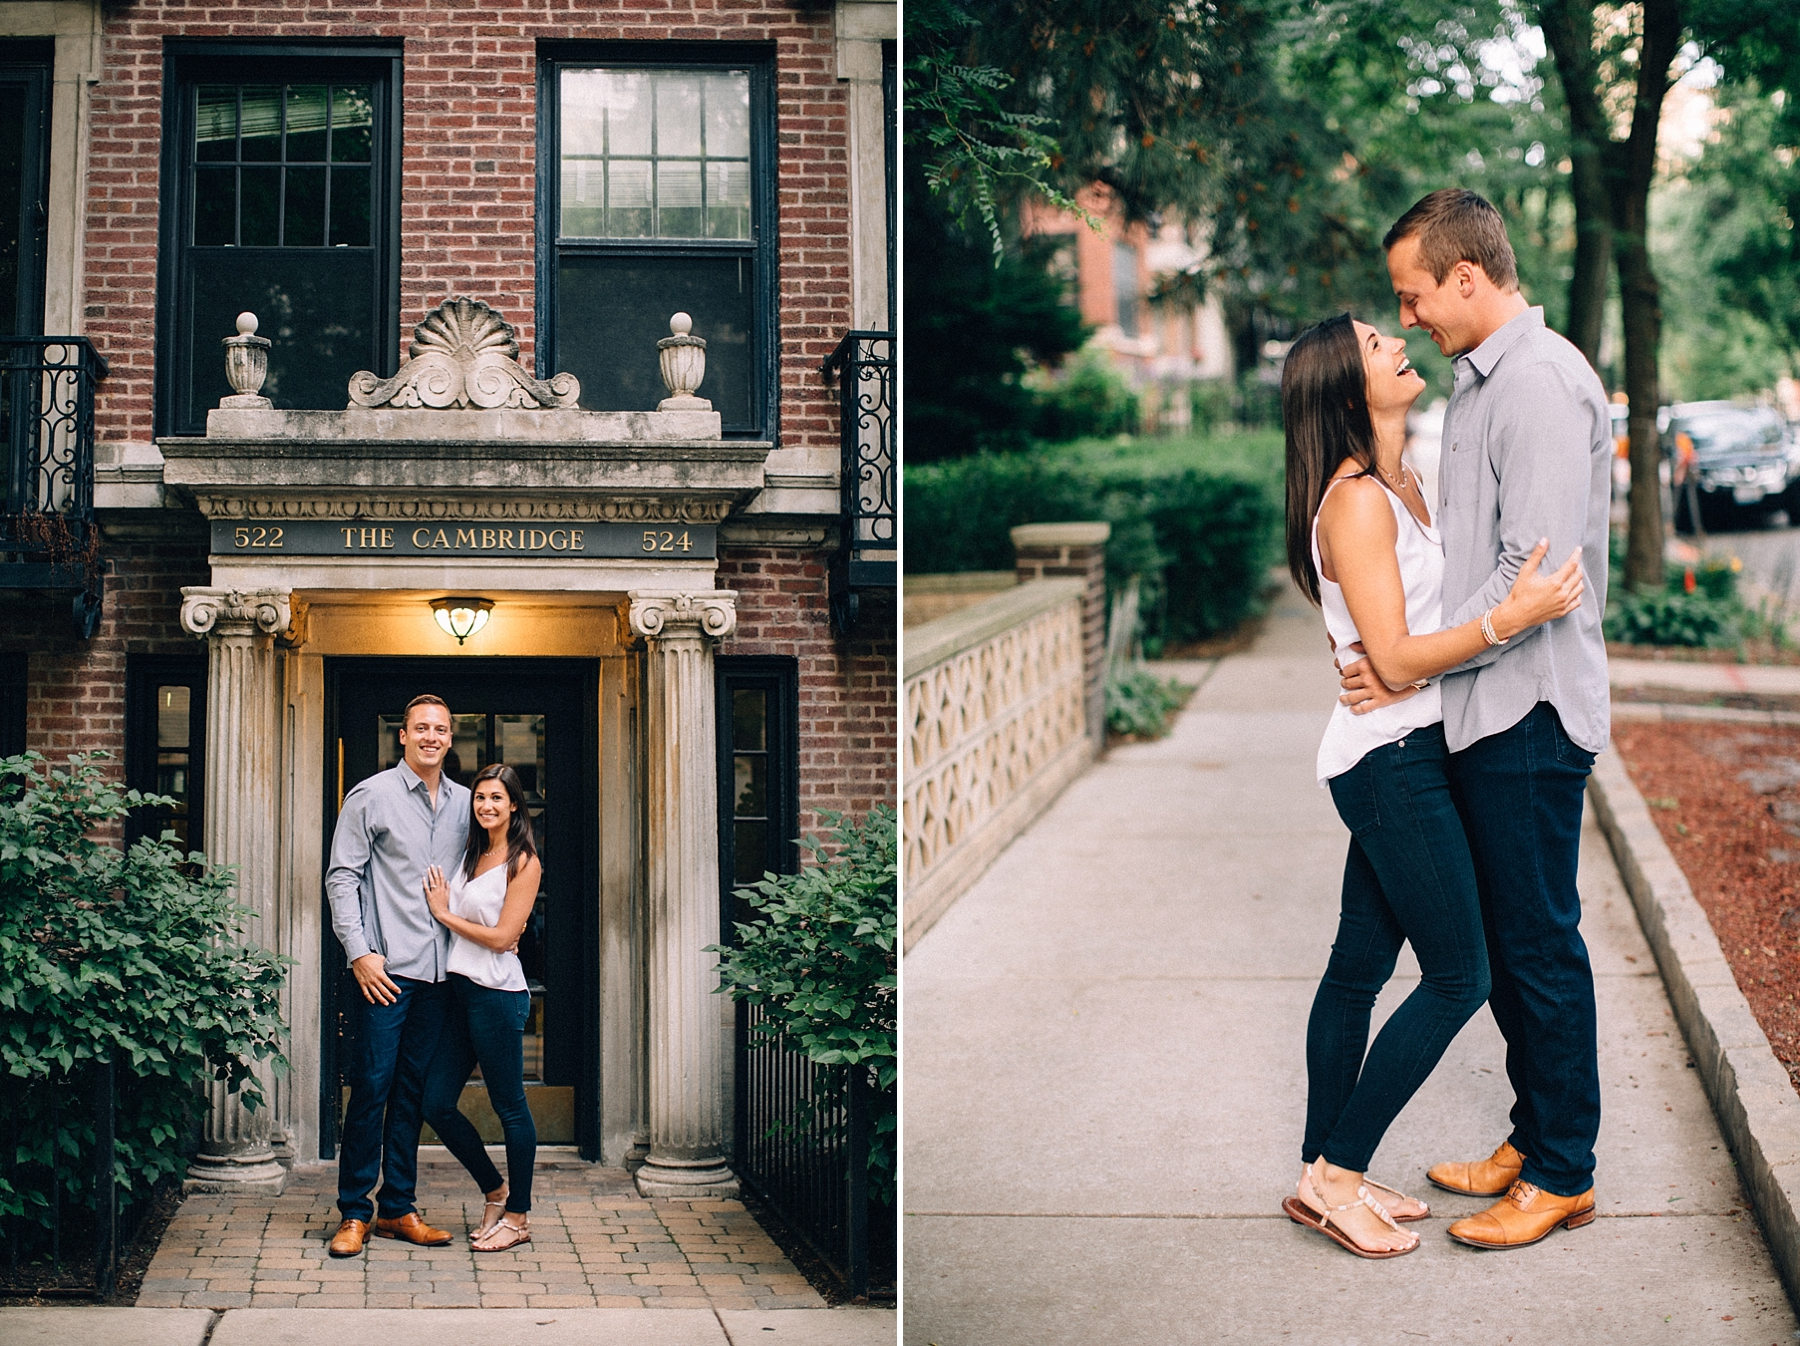 chicago-lake-view-fullerton-engagement-wedding-photography_0006.jpg